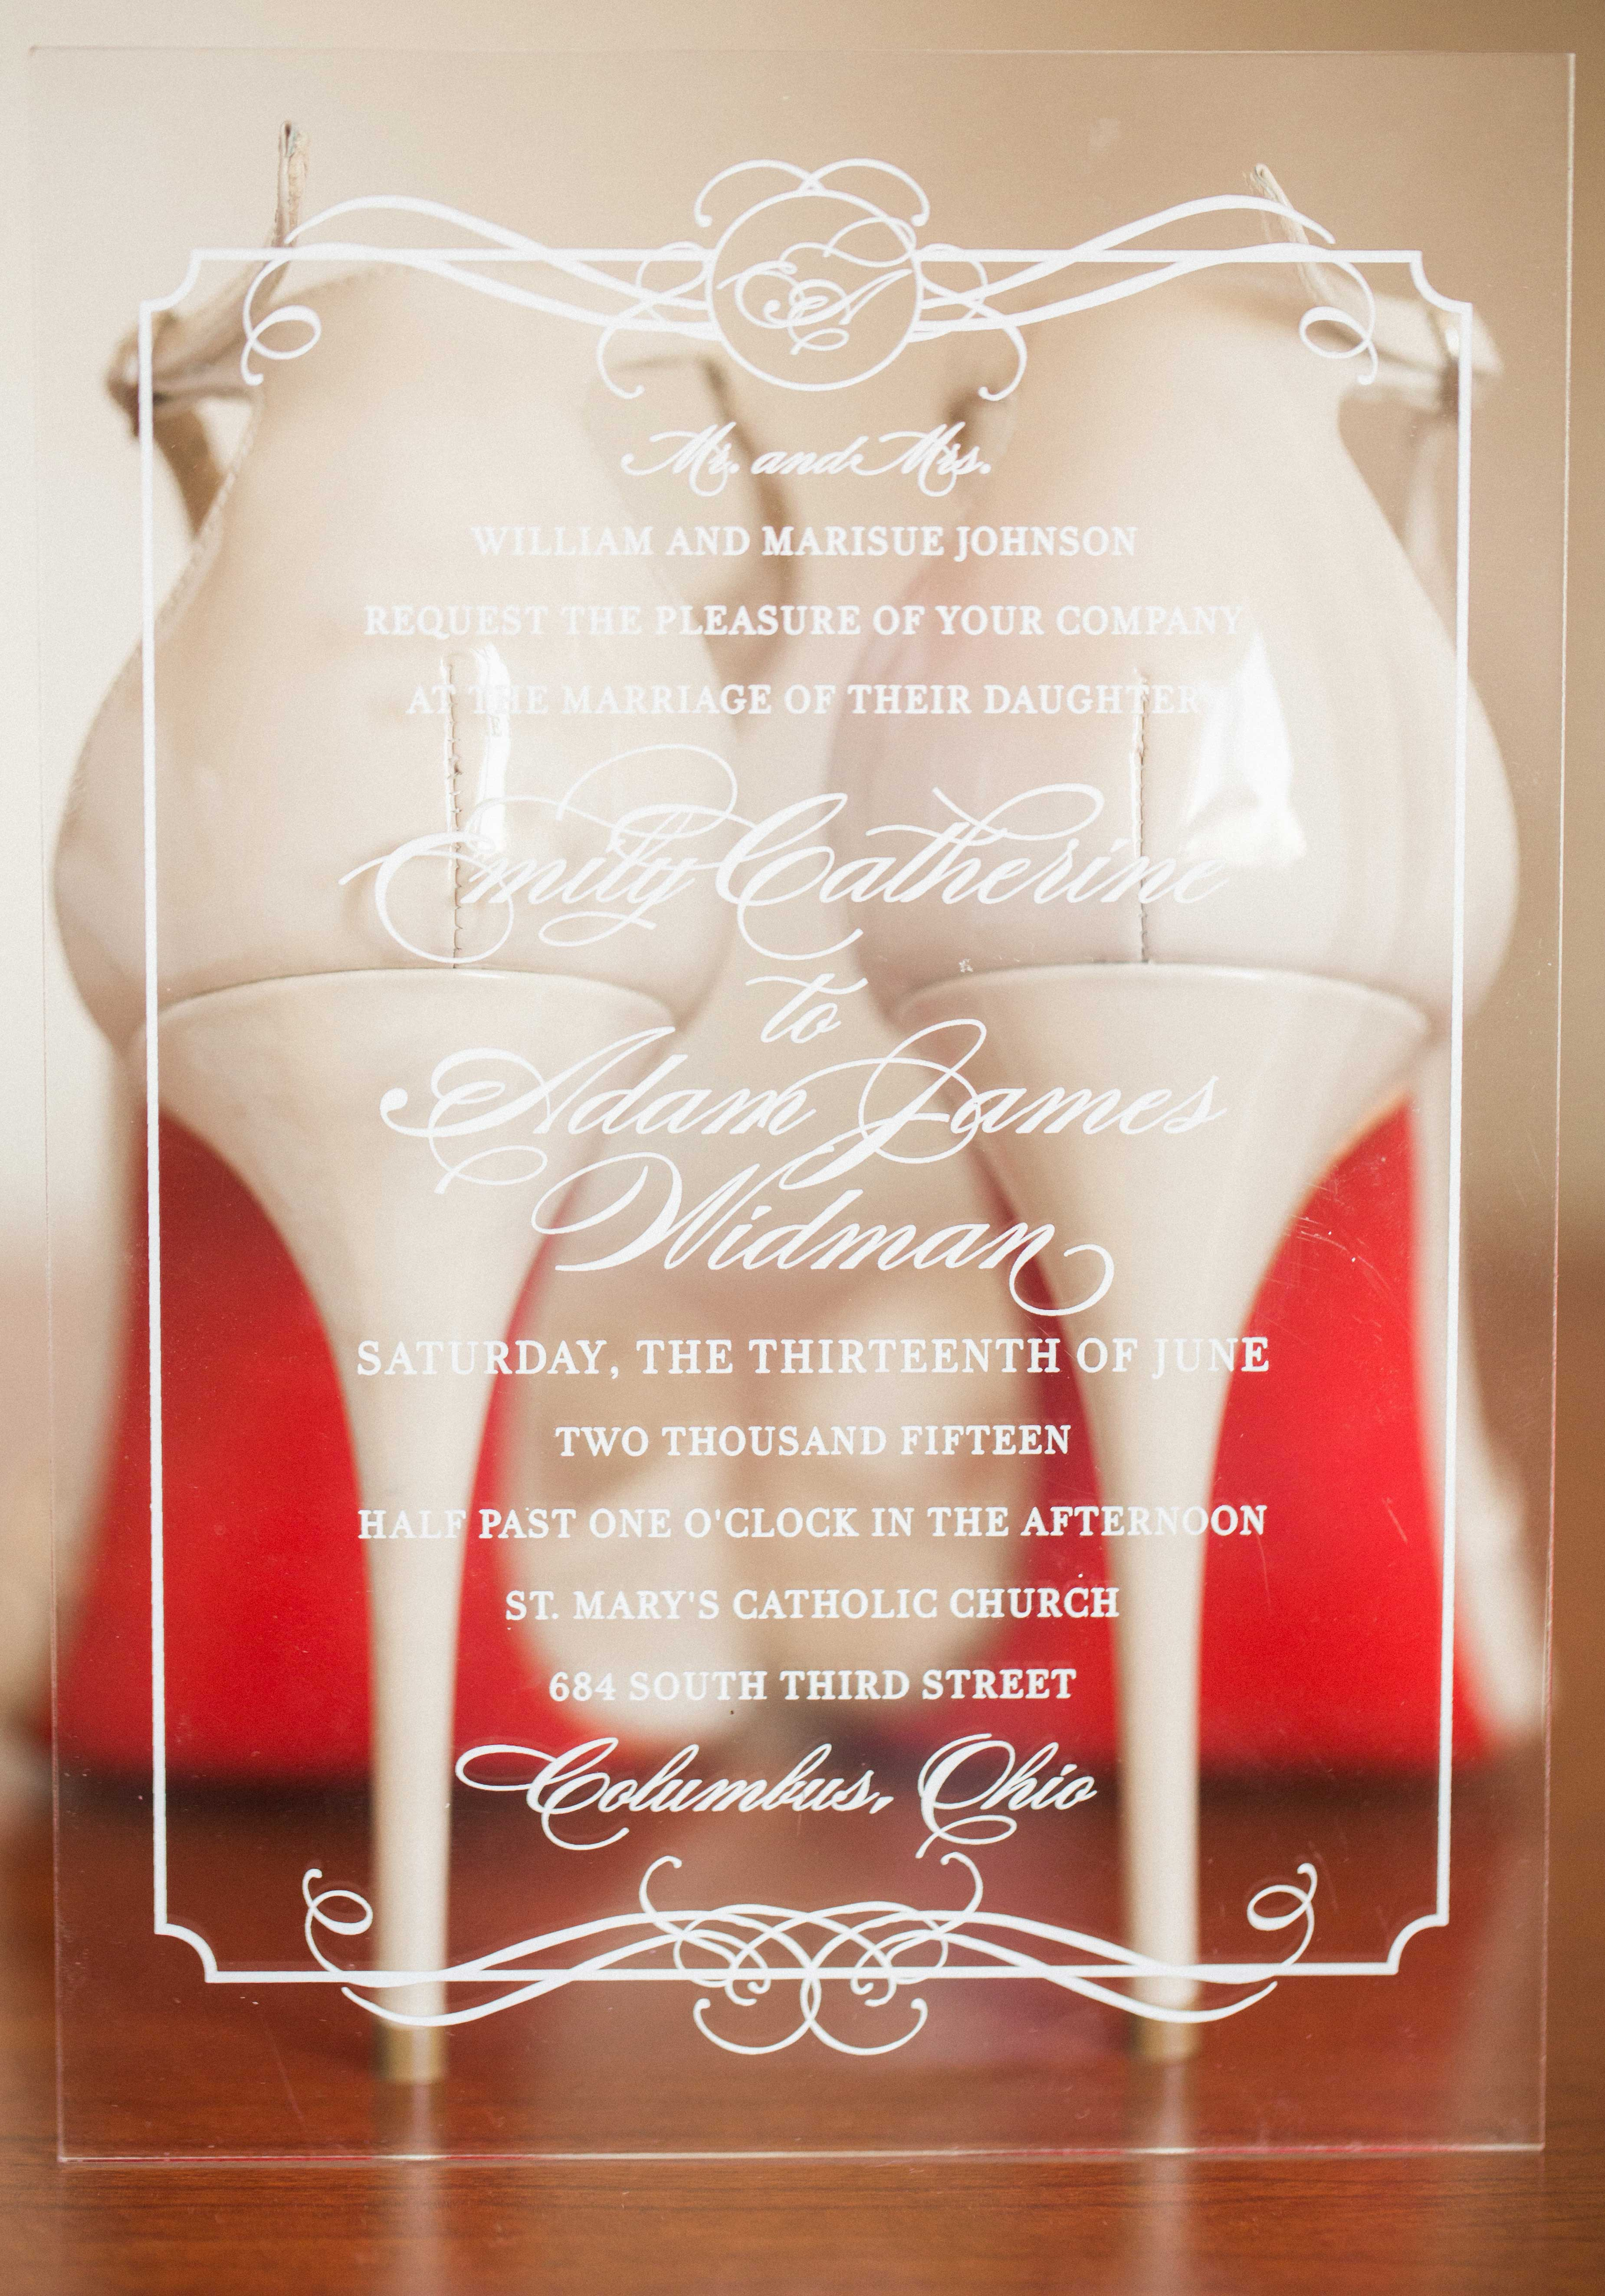 Clear lucite acrylic wedding invitation with white script Louboutin shoe